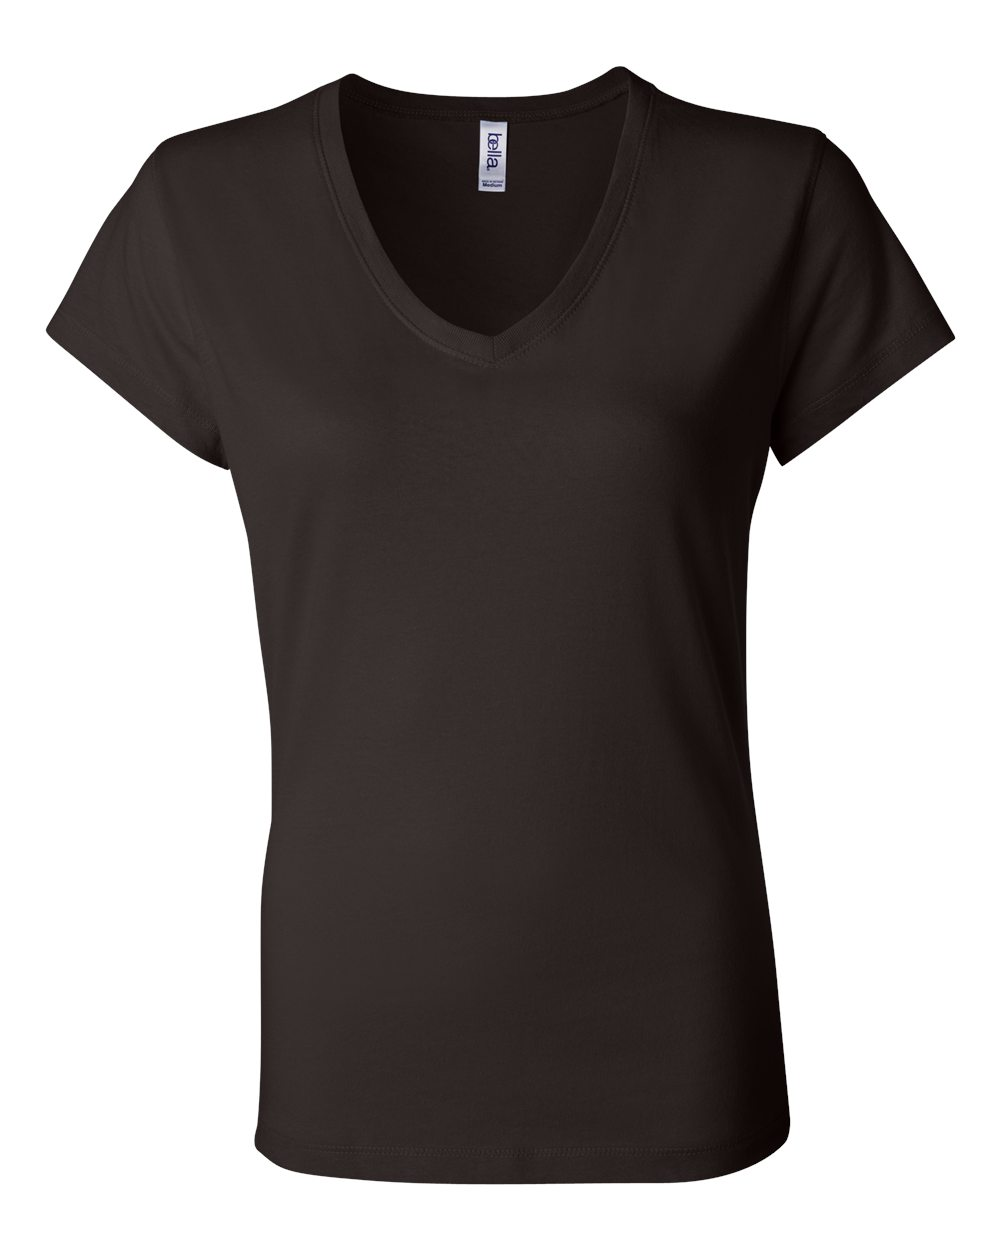 Bella_+_Canvas_6005_Chocolate_Front_High.jpg